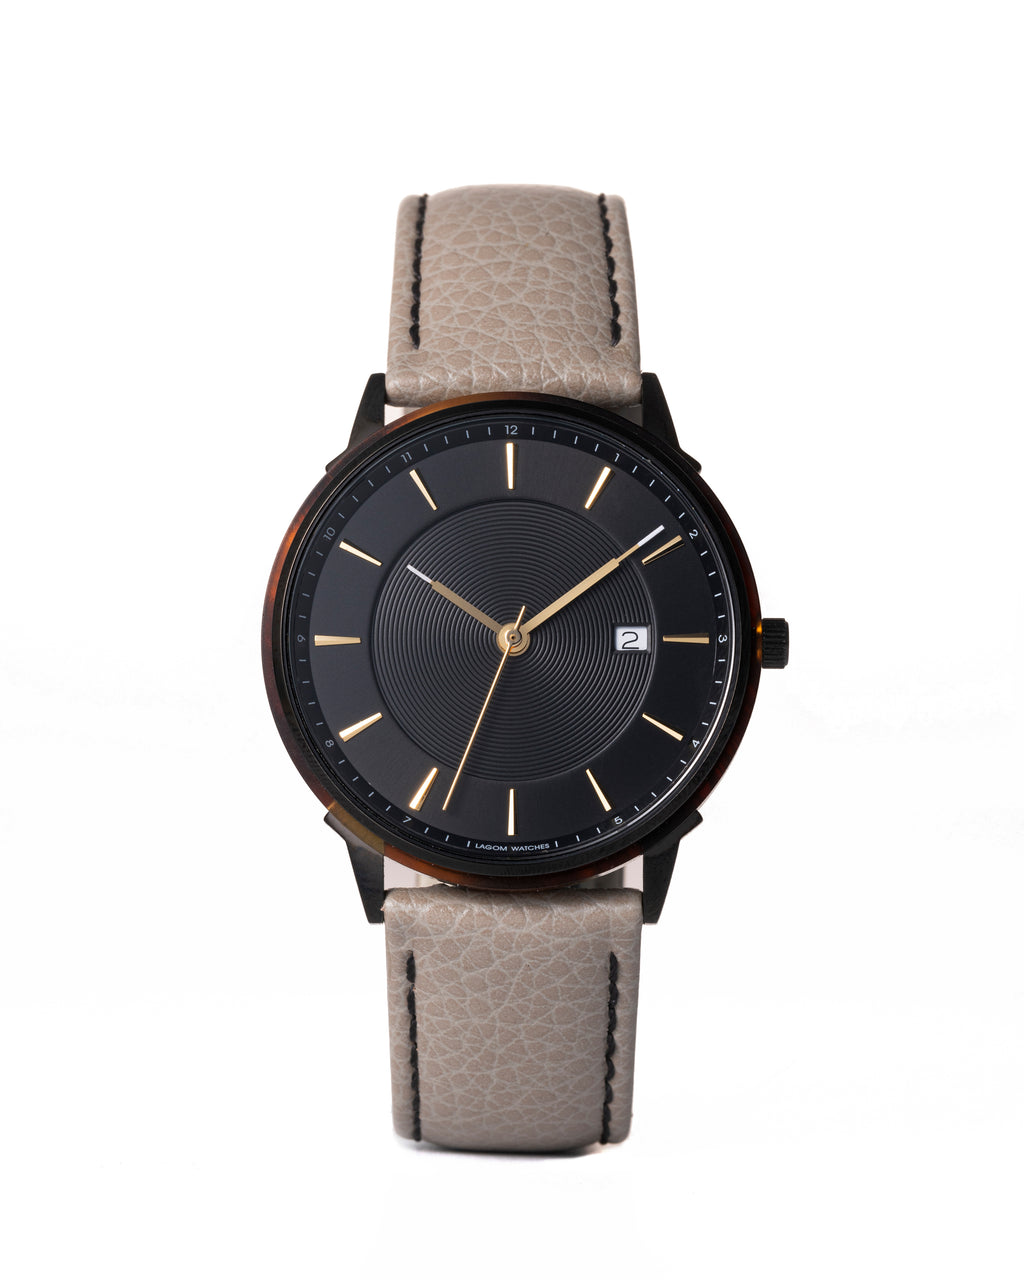 LW101-Black.Black.GreyStitching(GOLD)